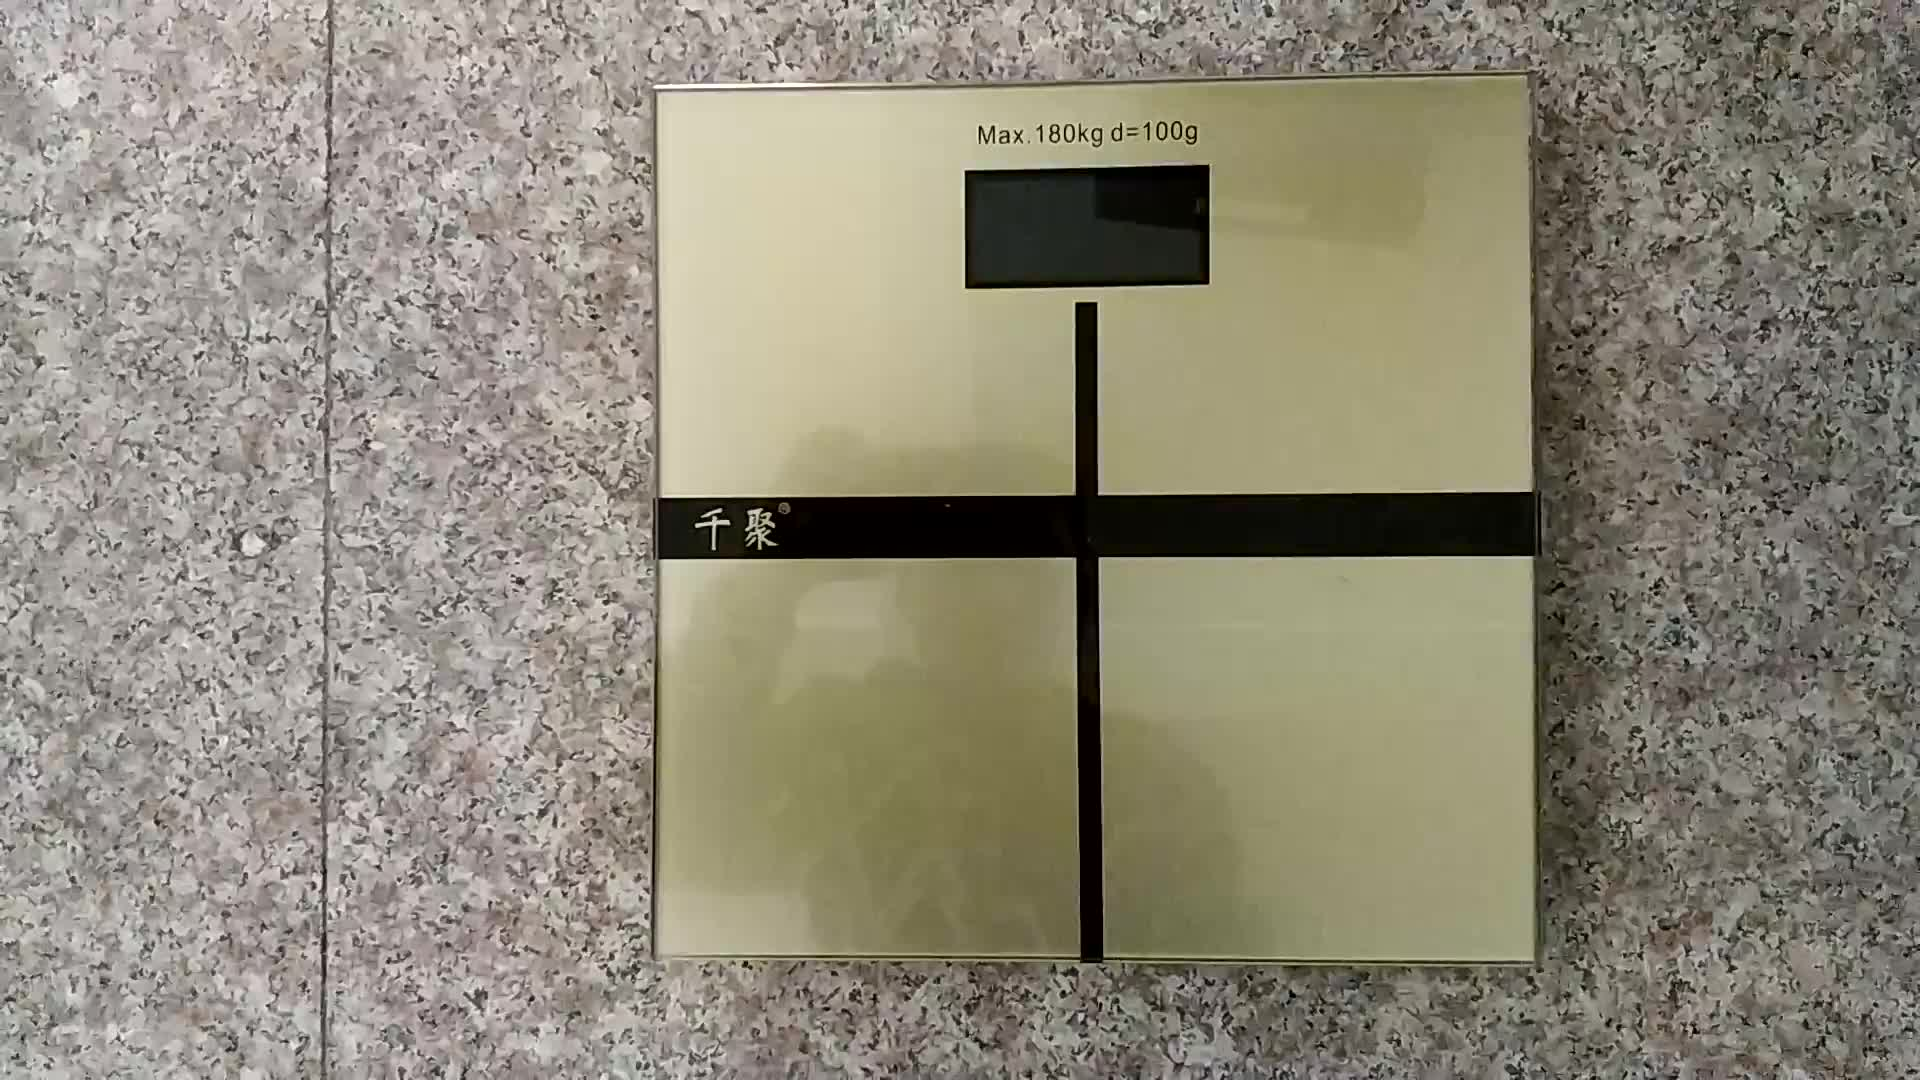 LED Bathroom Scale 180Kg 396lb Body Weight Scale